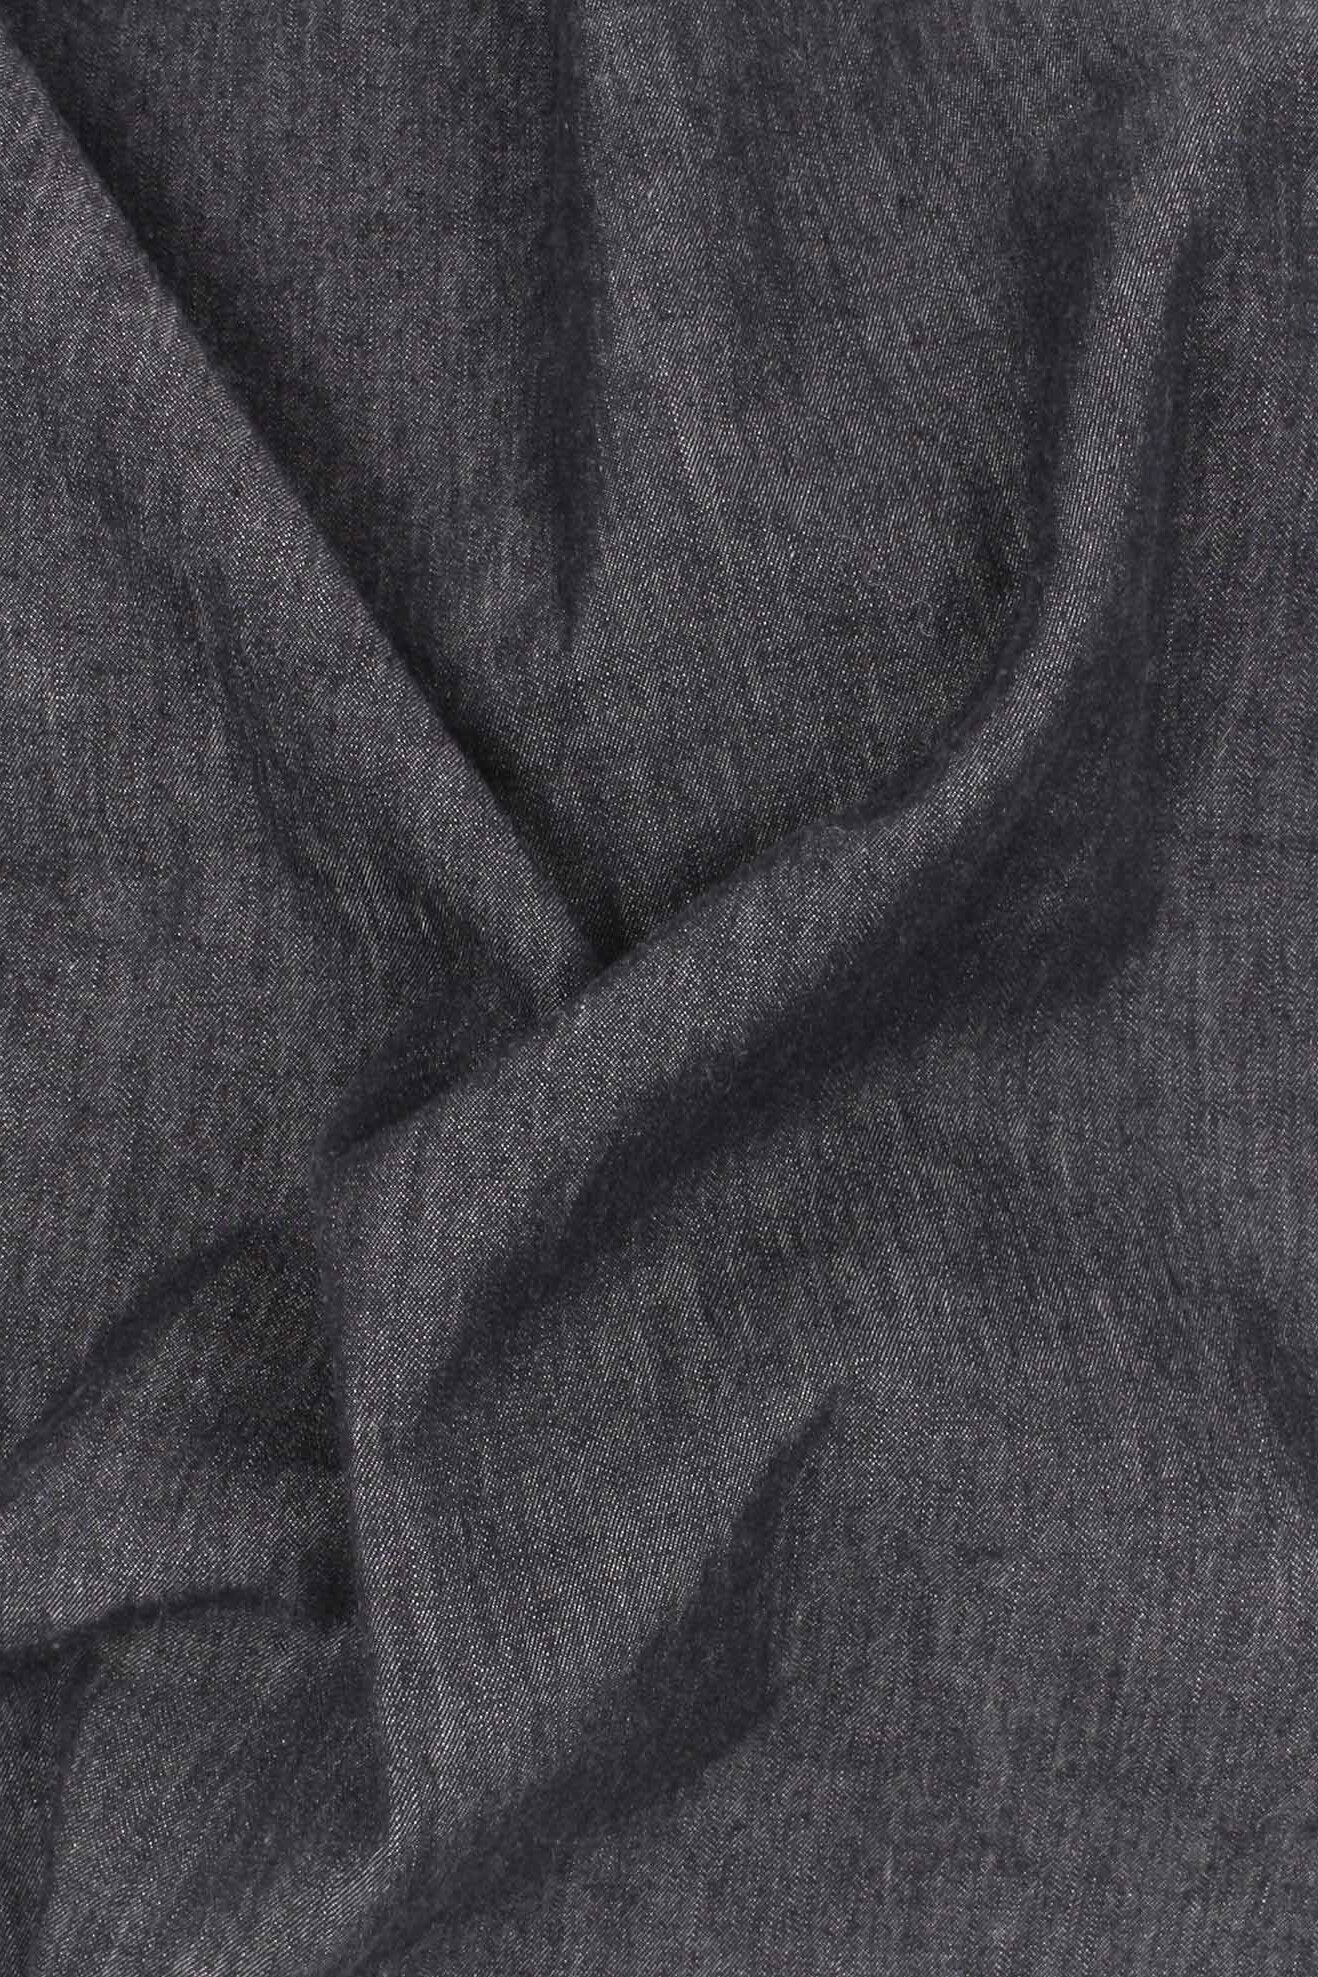 5 oz. Chambray Denim Black